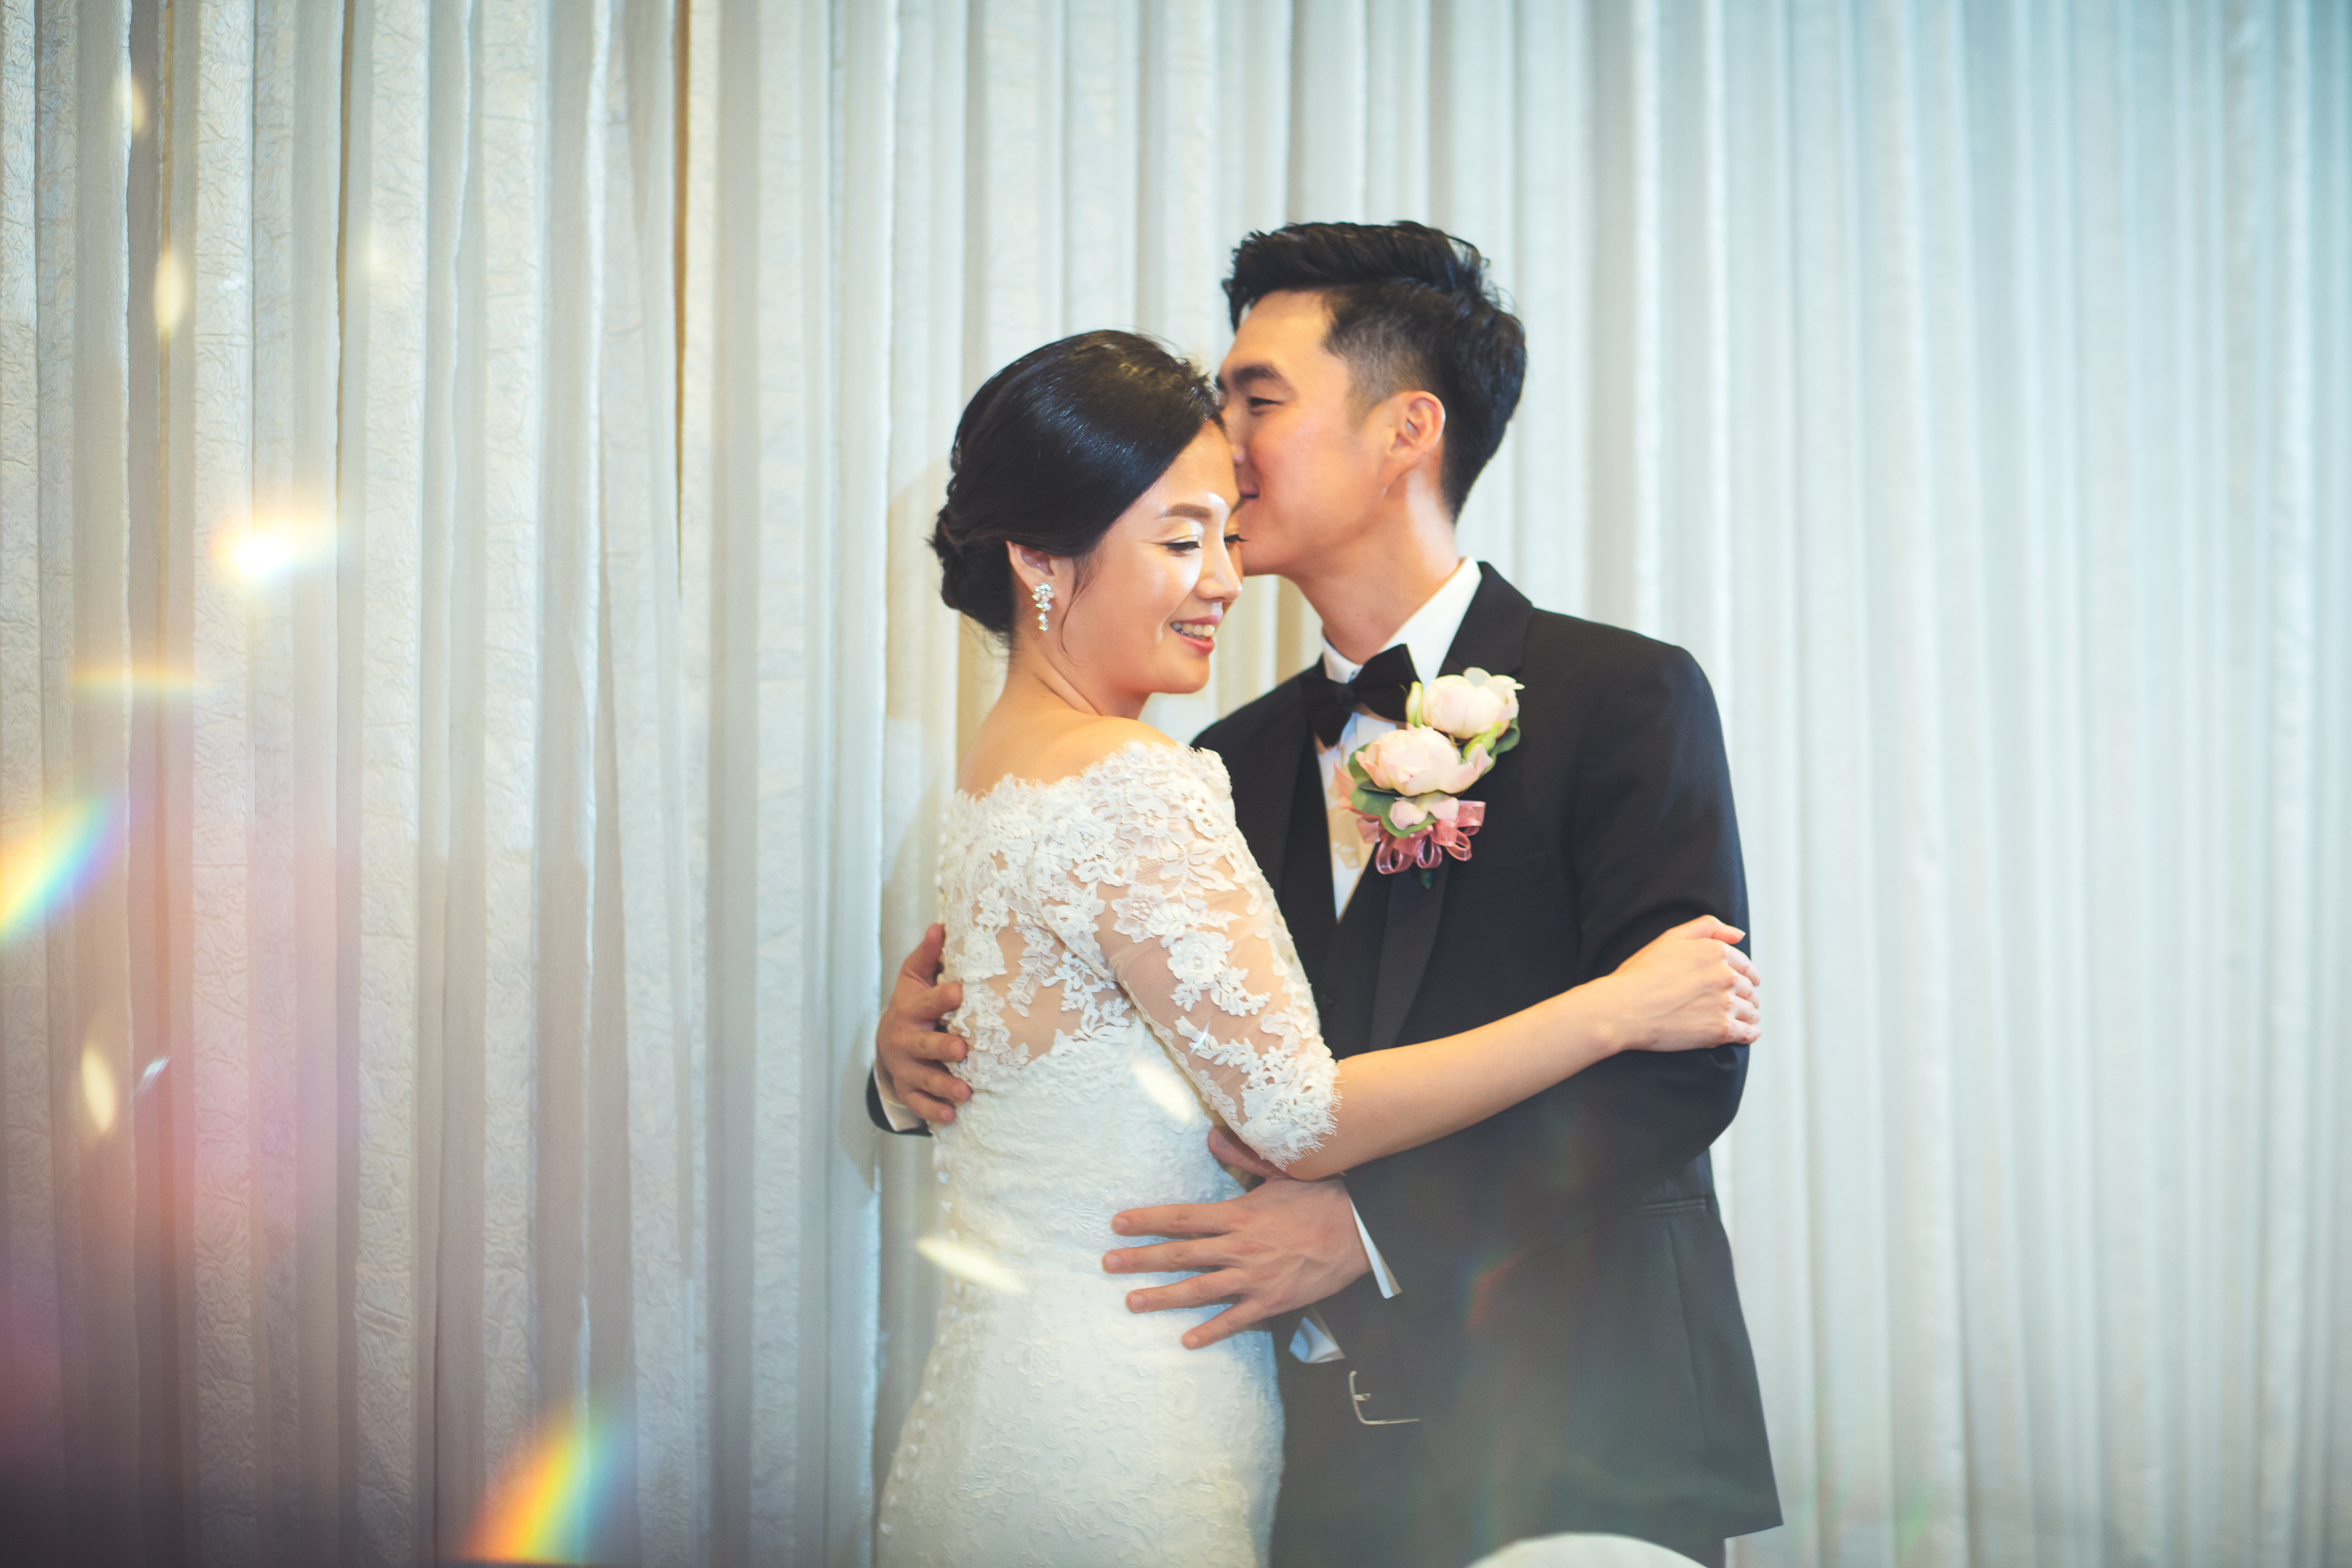 87_Ji Young Choi & Kyungmin Song Wedding